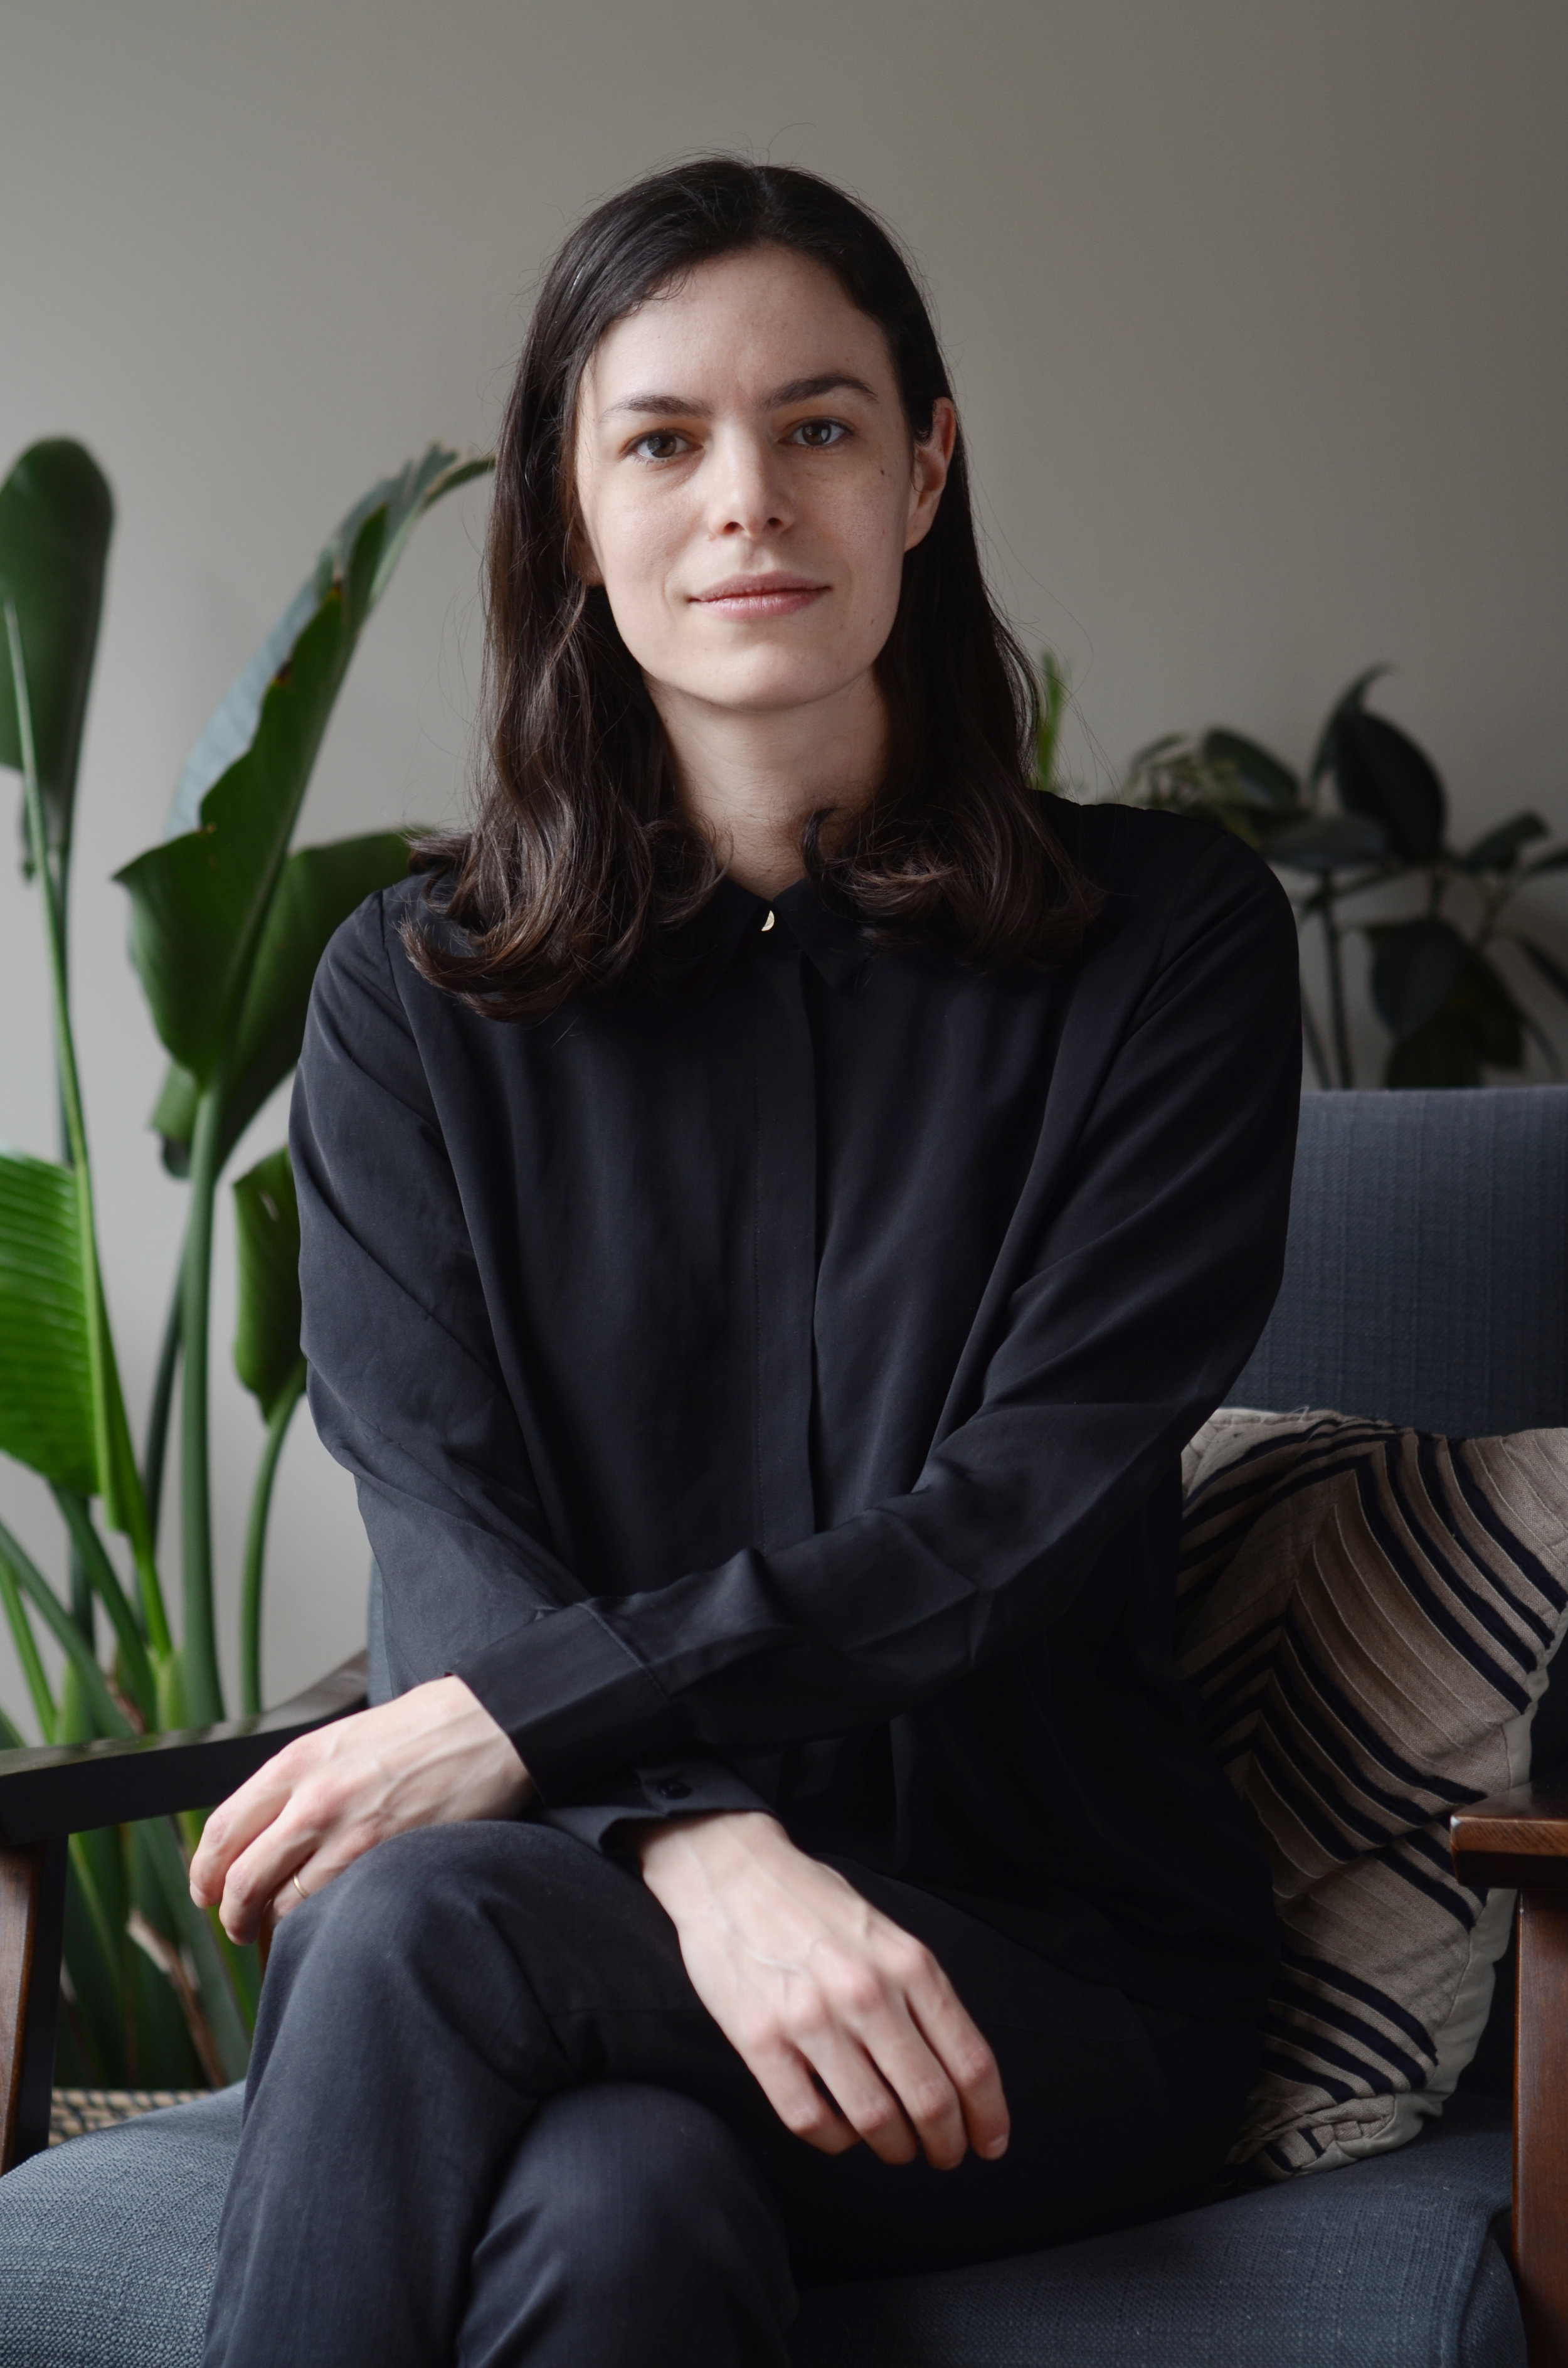 Miri Orenstein  was born in Haifa, Israel. In 2010, Miri completed her photography studies from Wizo Academy of Design and Education and in 2014, she received her B.Des. in Visual Communication from Bezalel Academy of Arts and Design, Jerusalem. In 2016 she moved to New York where she discovered her love for pottery and clay. Today, Miri work at Sculpture Space NYC, where she practices and develops her own ceramic collections.